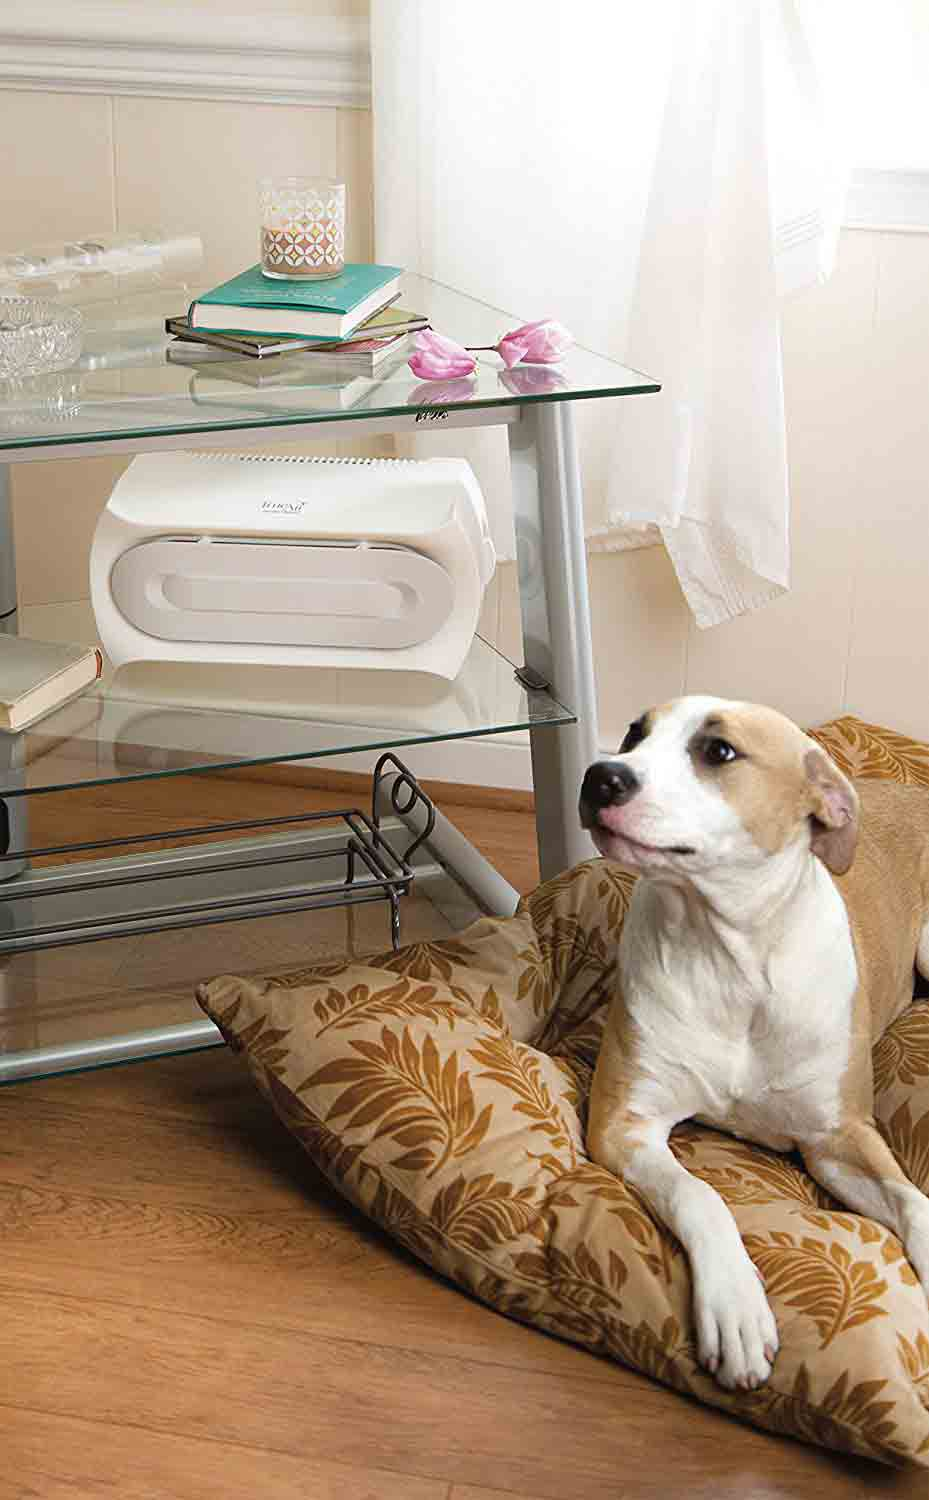 Air purifier on a small table with a dog lying on a bed next to it